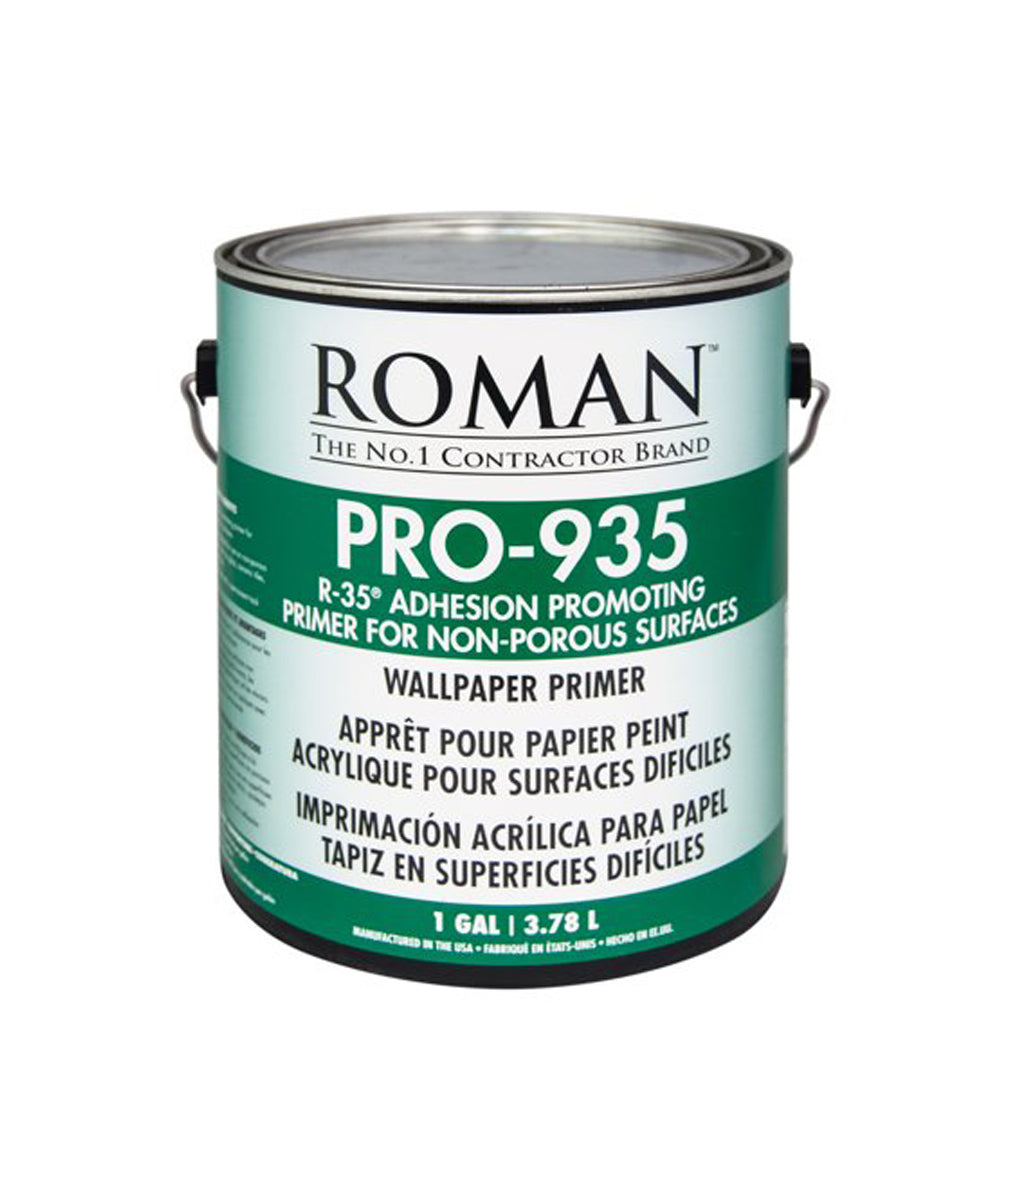 Pro 935 Wallpaper Primer, available at Wallauer's in NY.